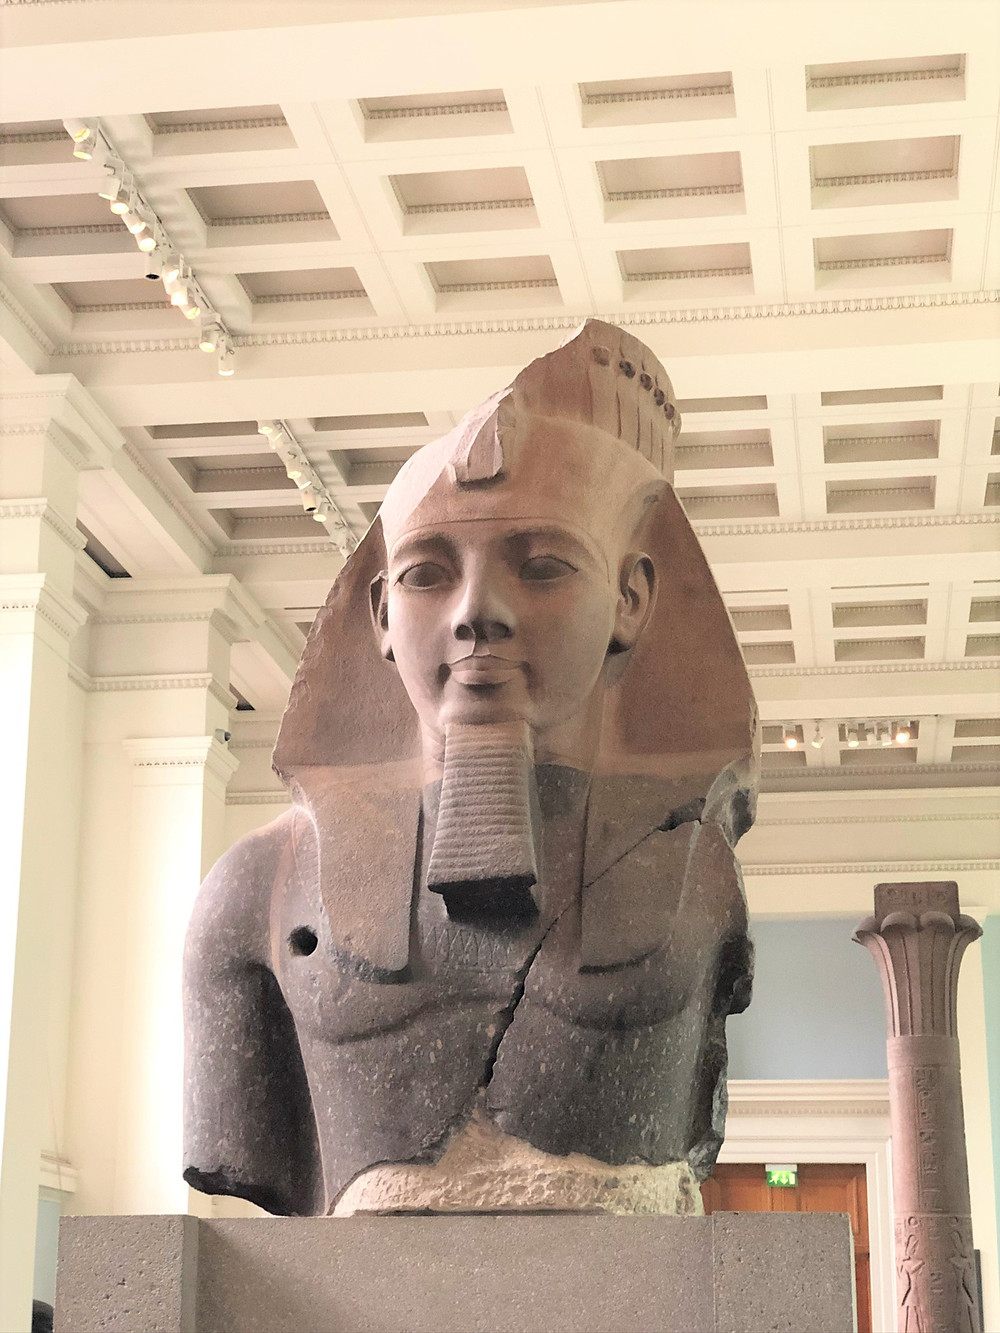 The largest Egyptian sculpture of Ramesses II in The British Museum originally flanked the Ramesseum's doorway